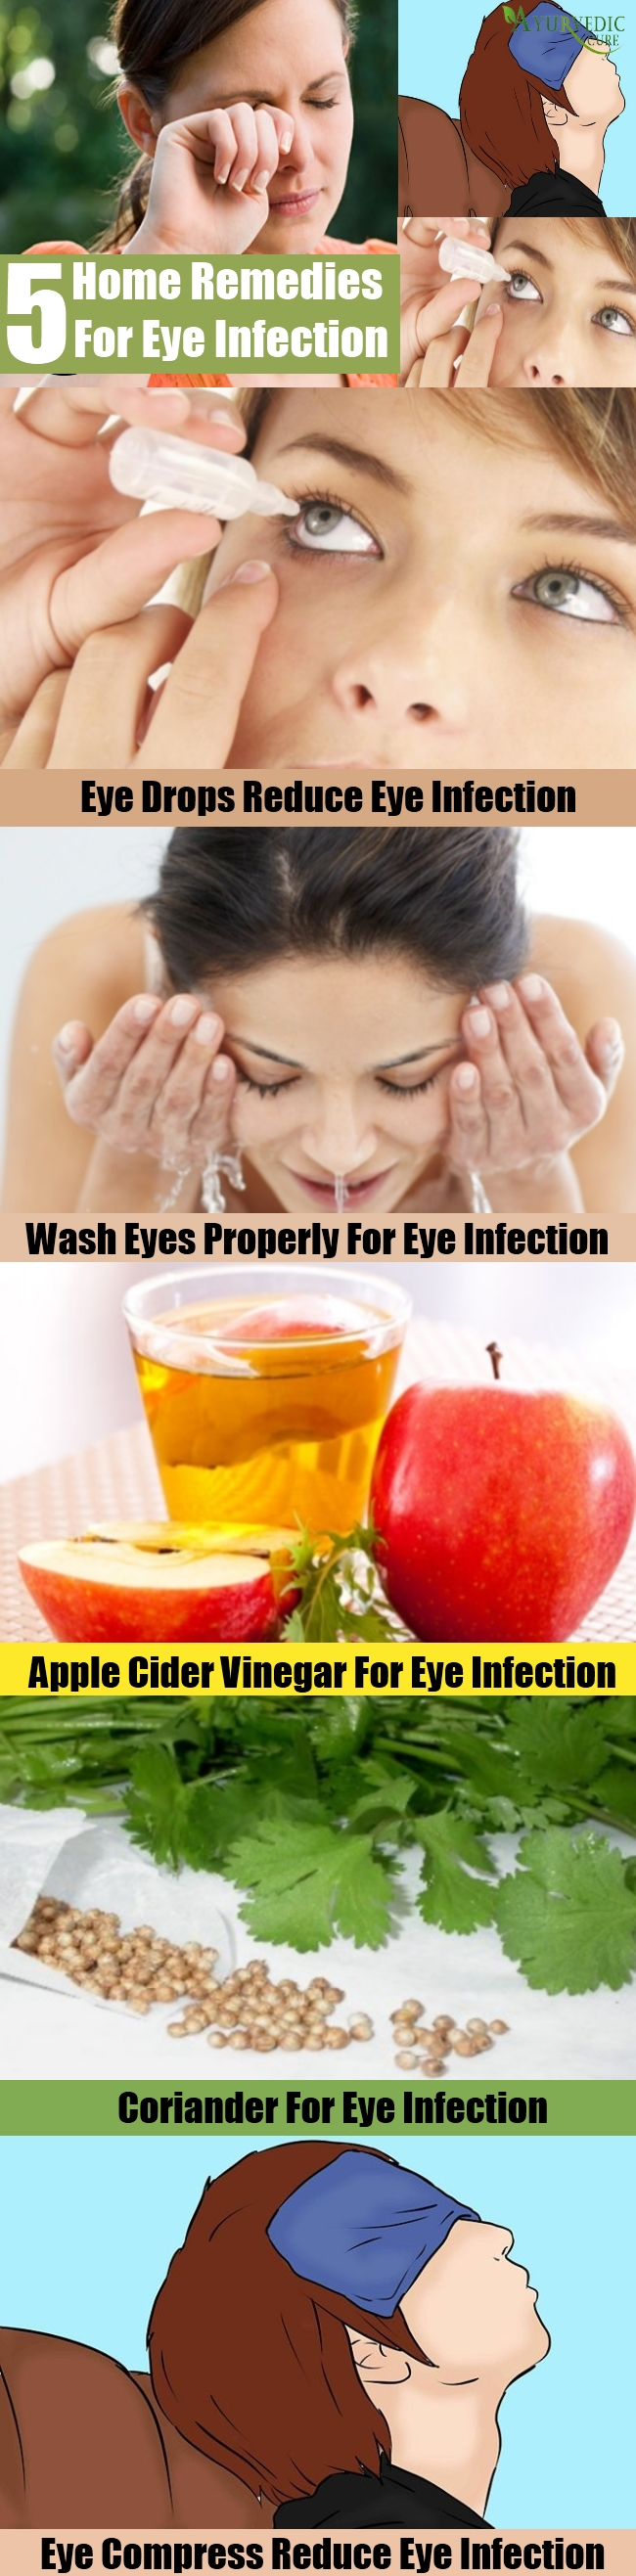 5 Effective Home Remedies For Eye Infection